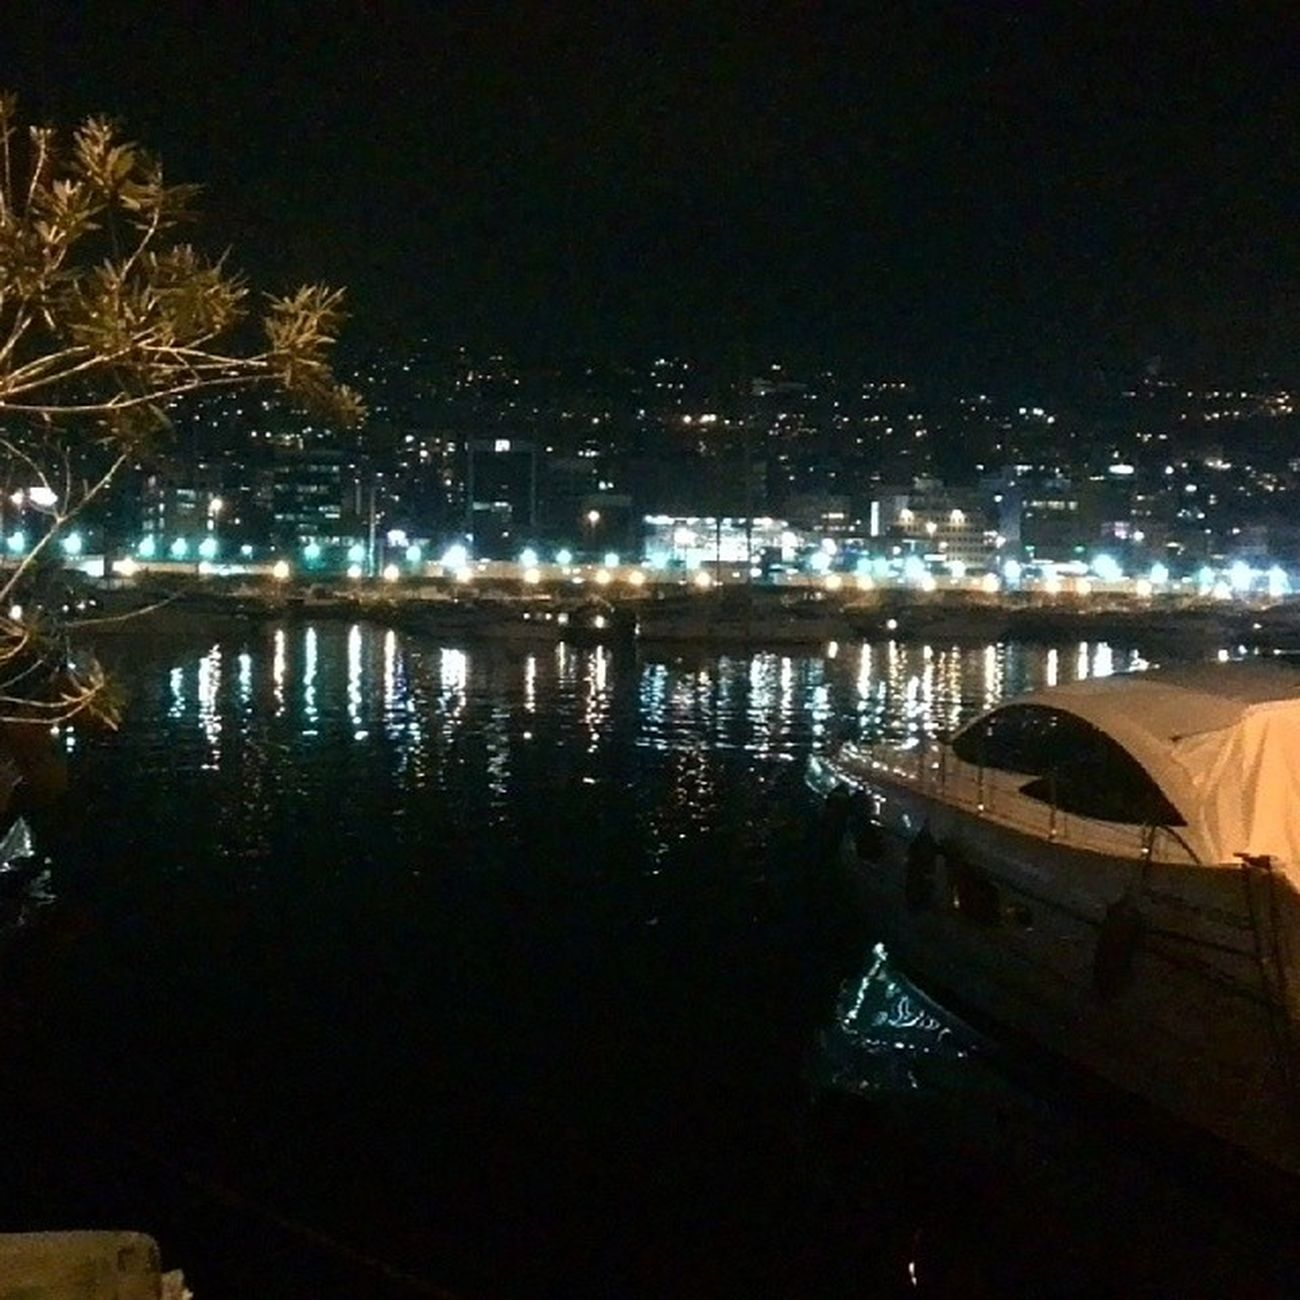 Dbayeh Marina Lights Reflection boatseafebruarylovelyweatherrelaxchillwalkingphotooftheday TagsForLikespromenadelivelovebeirut proudlylebanese